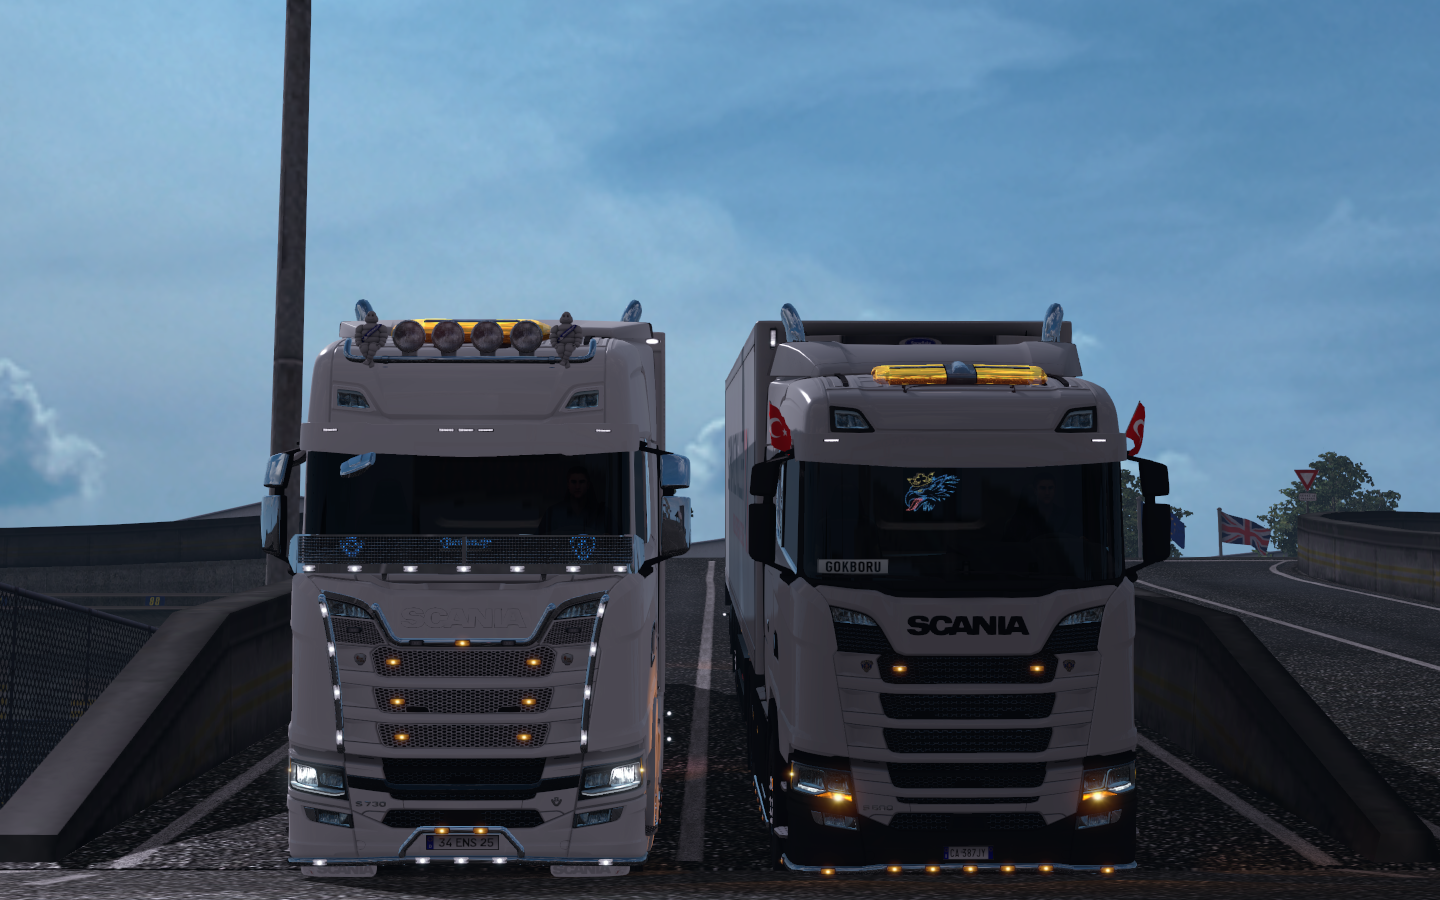 ets2_20190802_235929_00.png